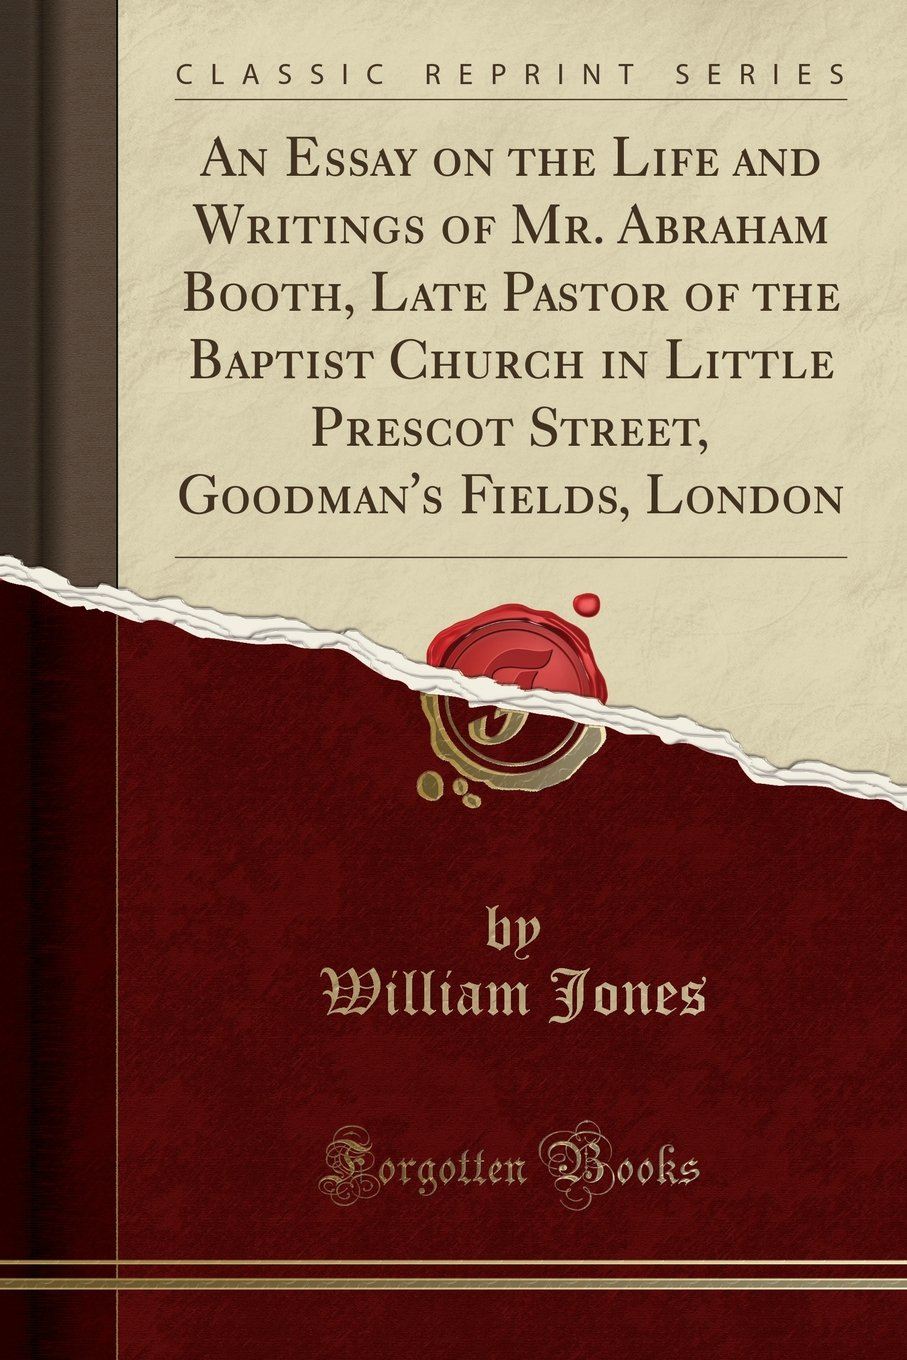 Download An Essay on the Life and Writings of Mr. Abraham Booth, Late Pastor of the Baptist Church in Little Prescot Street, Goodman's Fields, London (Classic Reprint) ebook